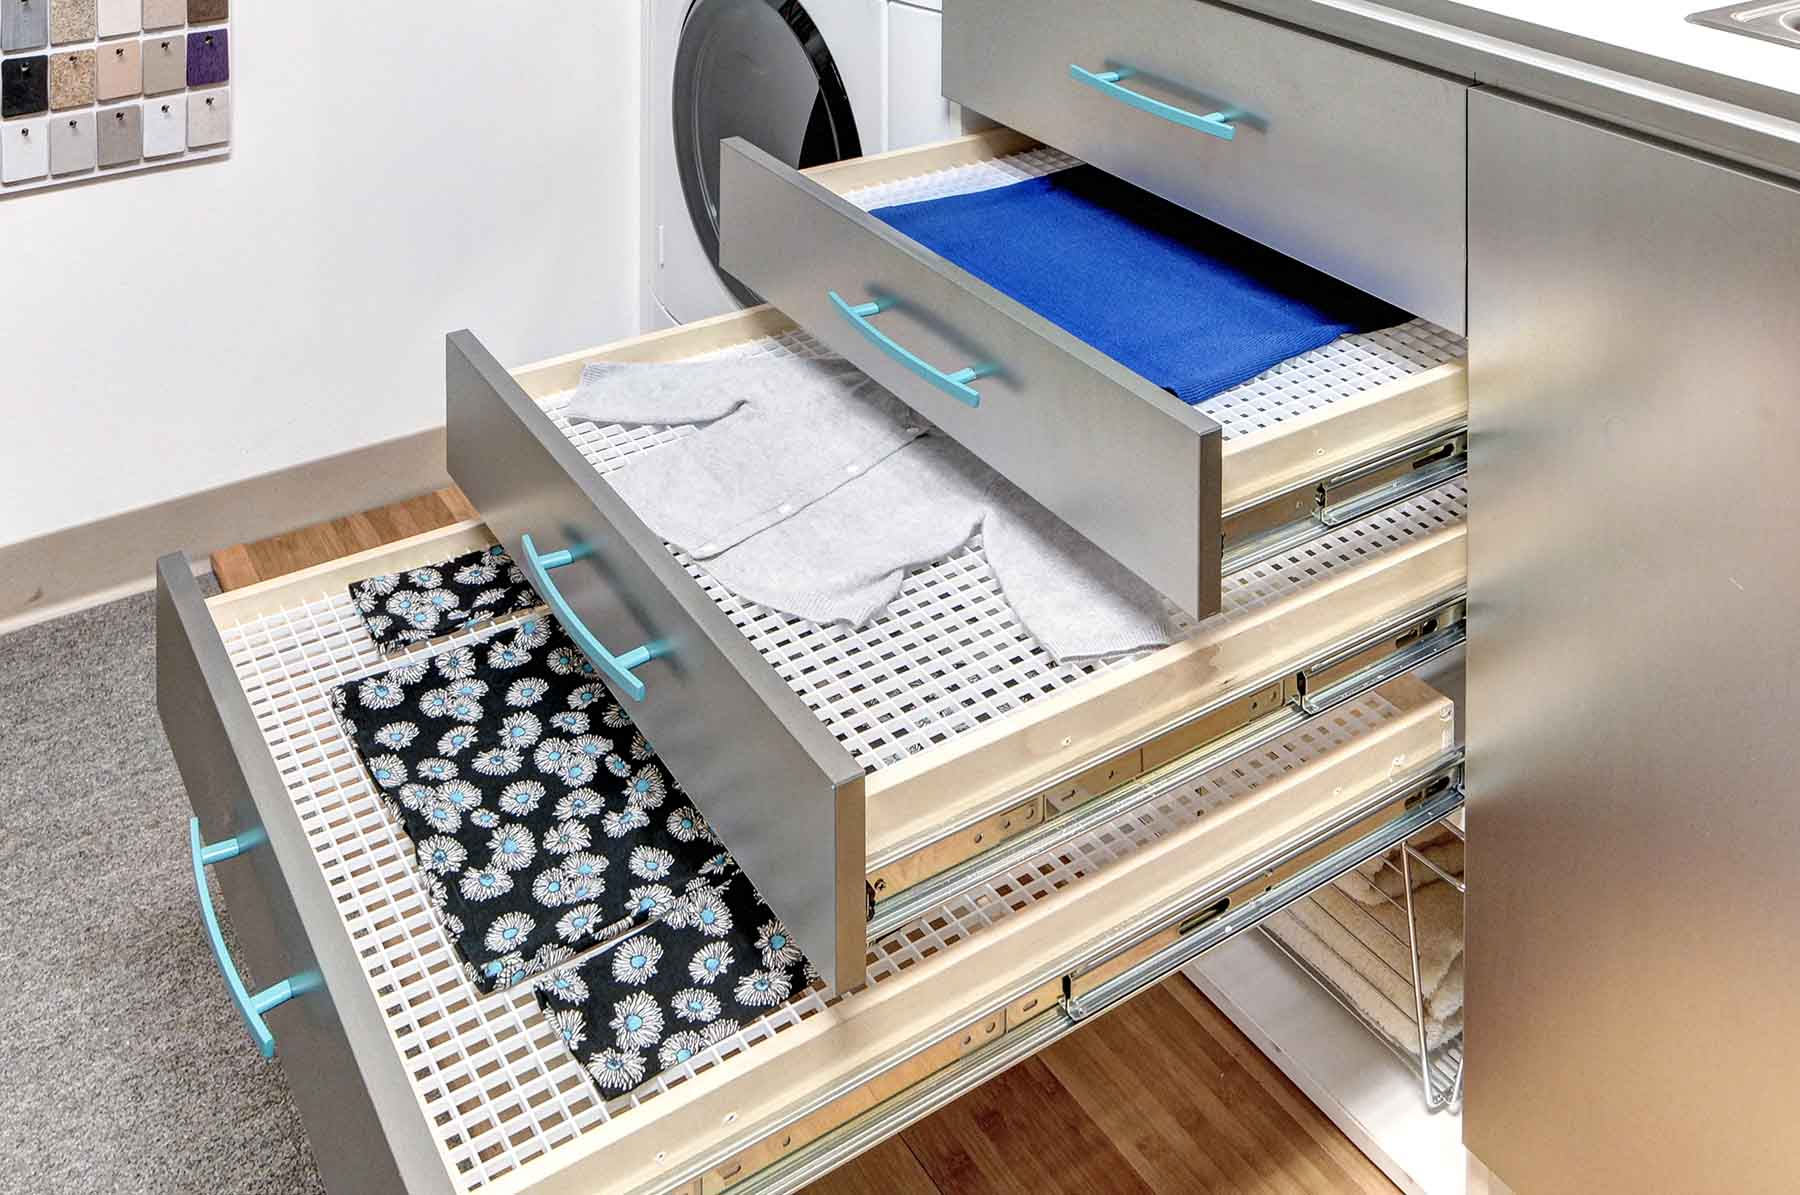 Laundry room drawers with drying racks